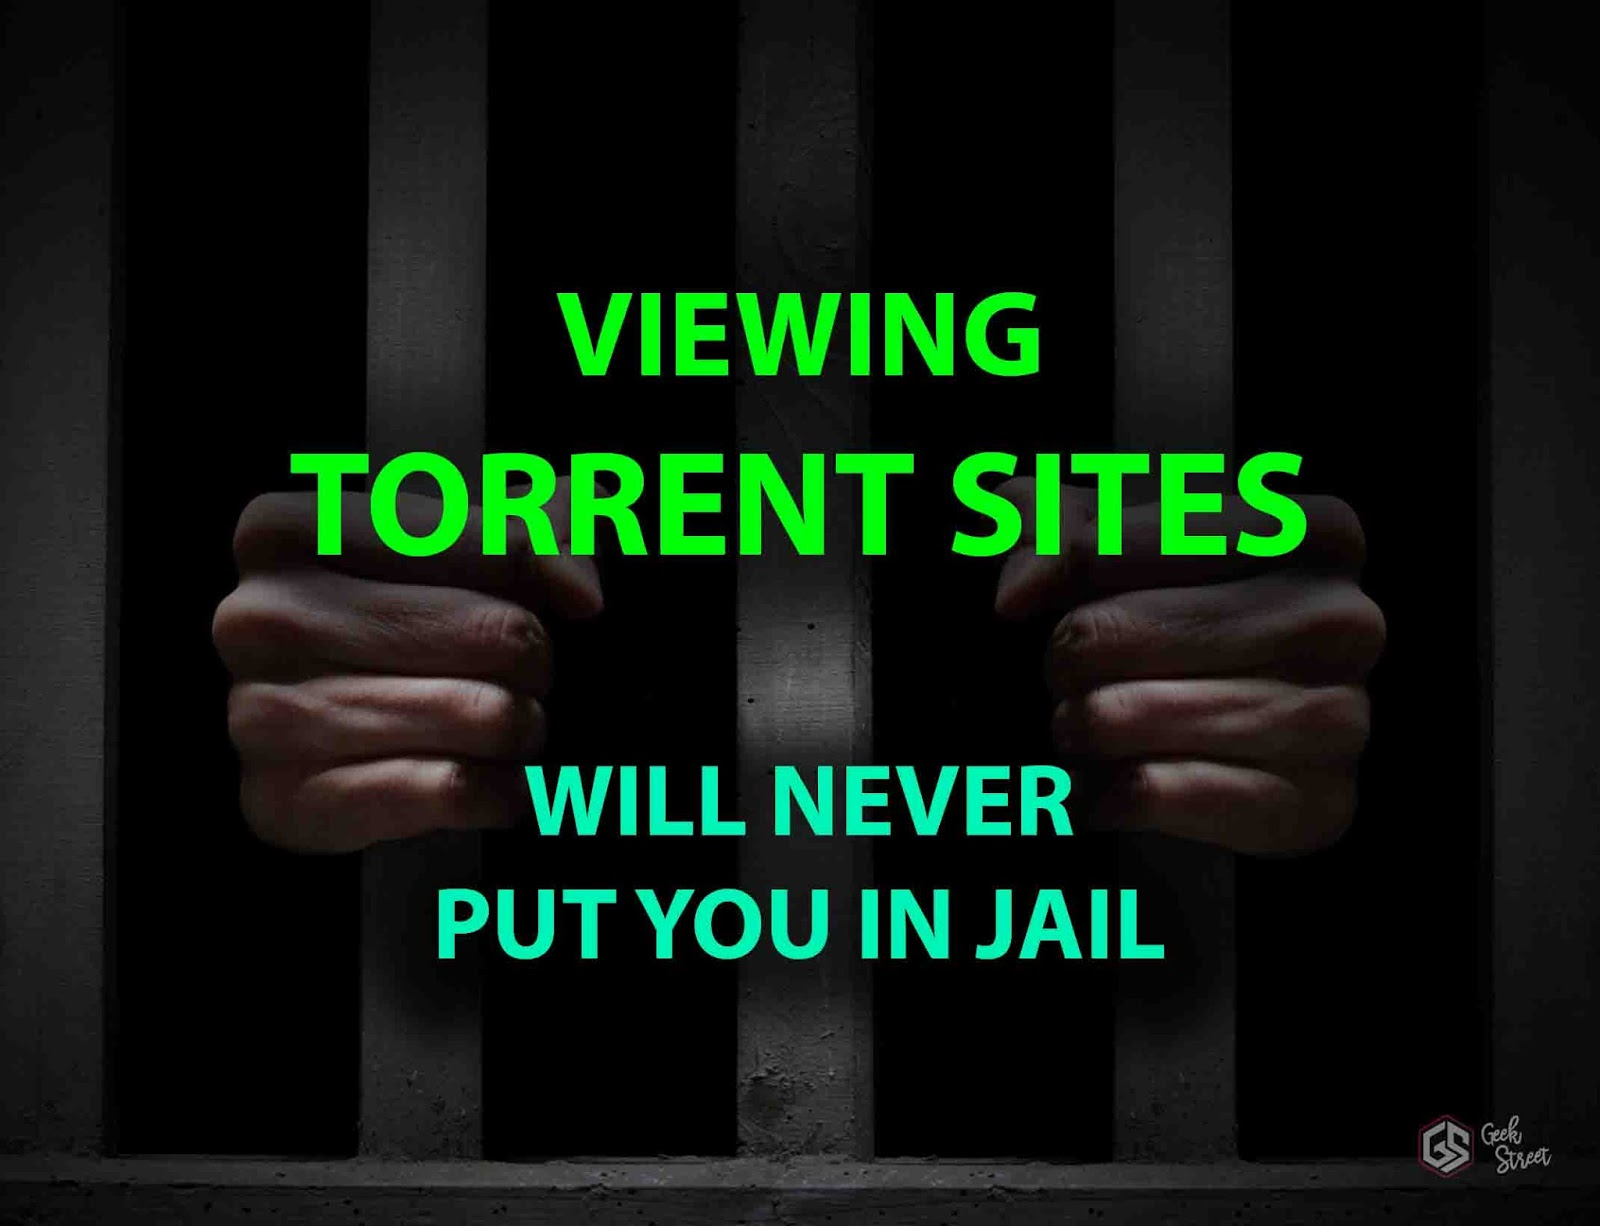 Viewing torrents